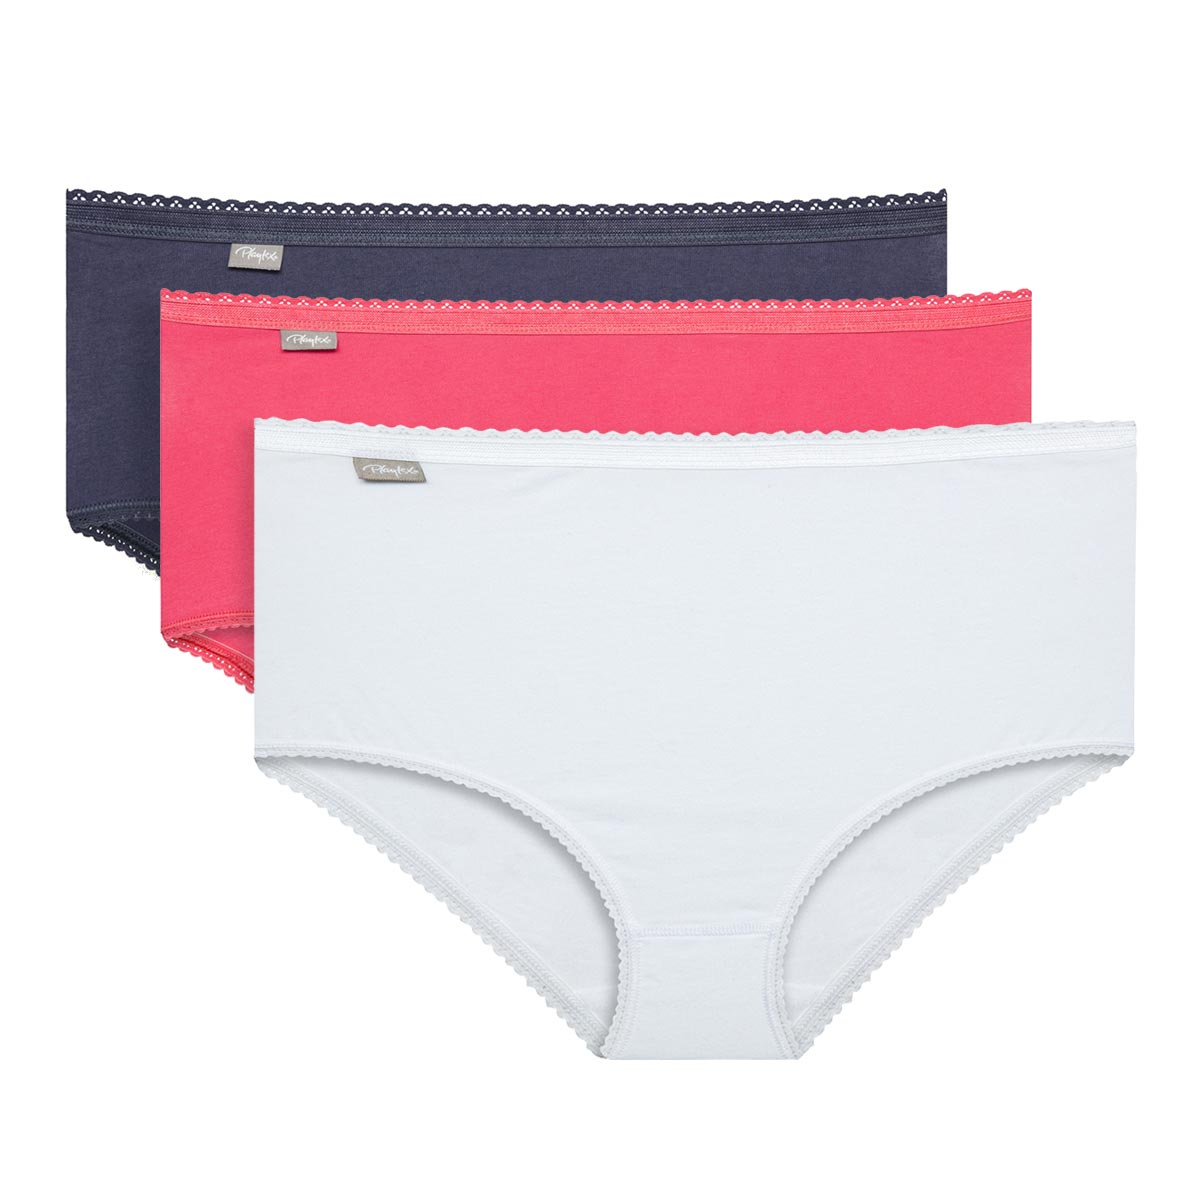 3 pack of white, grey and coral  midi briefs-PLAYTEX